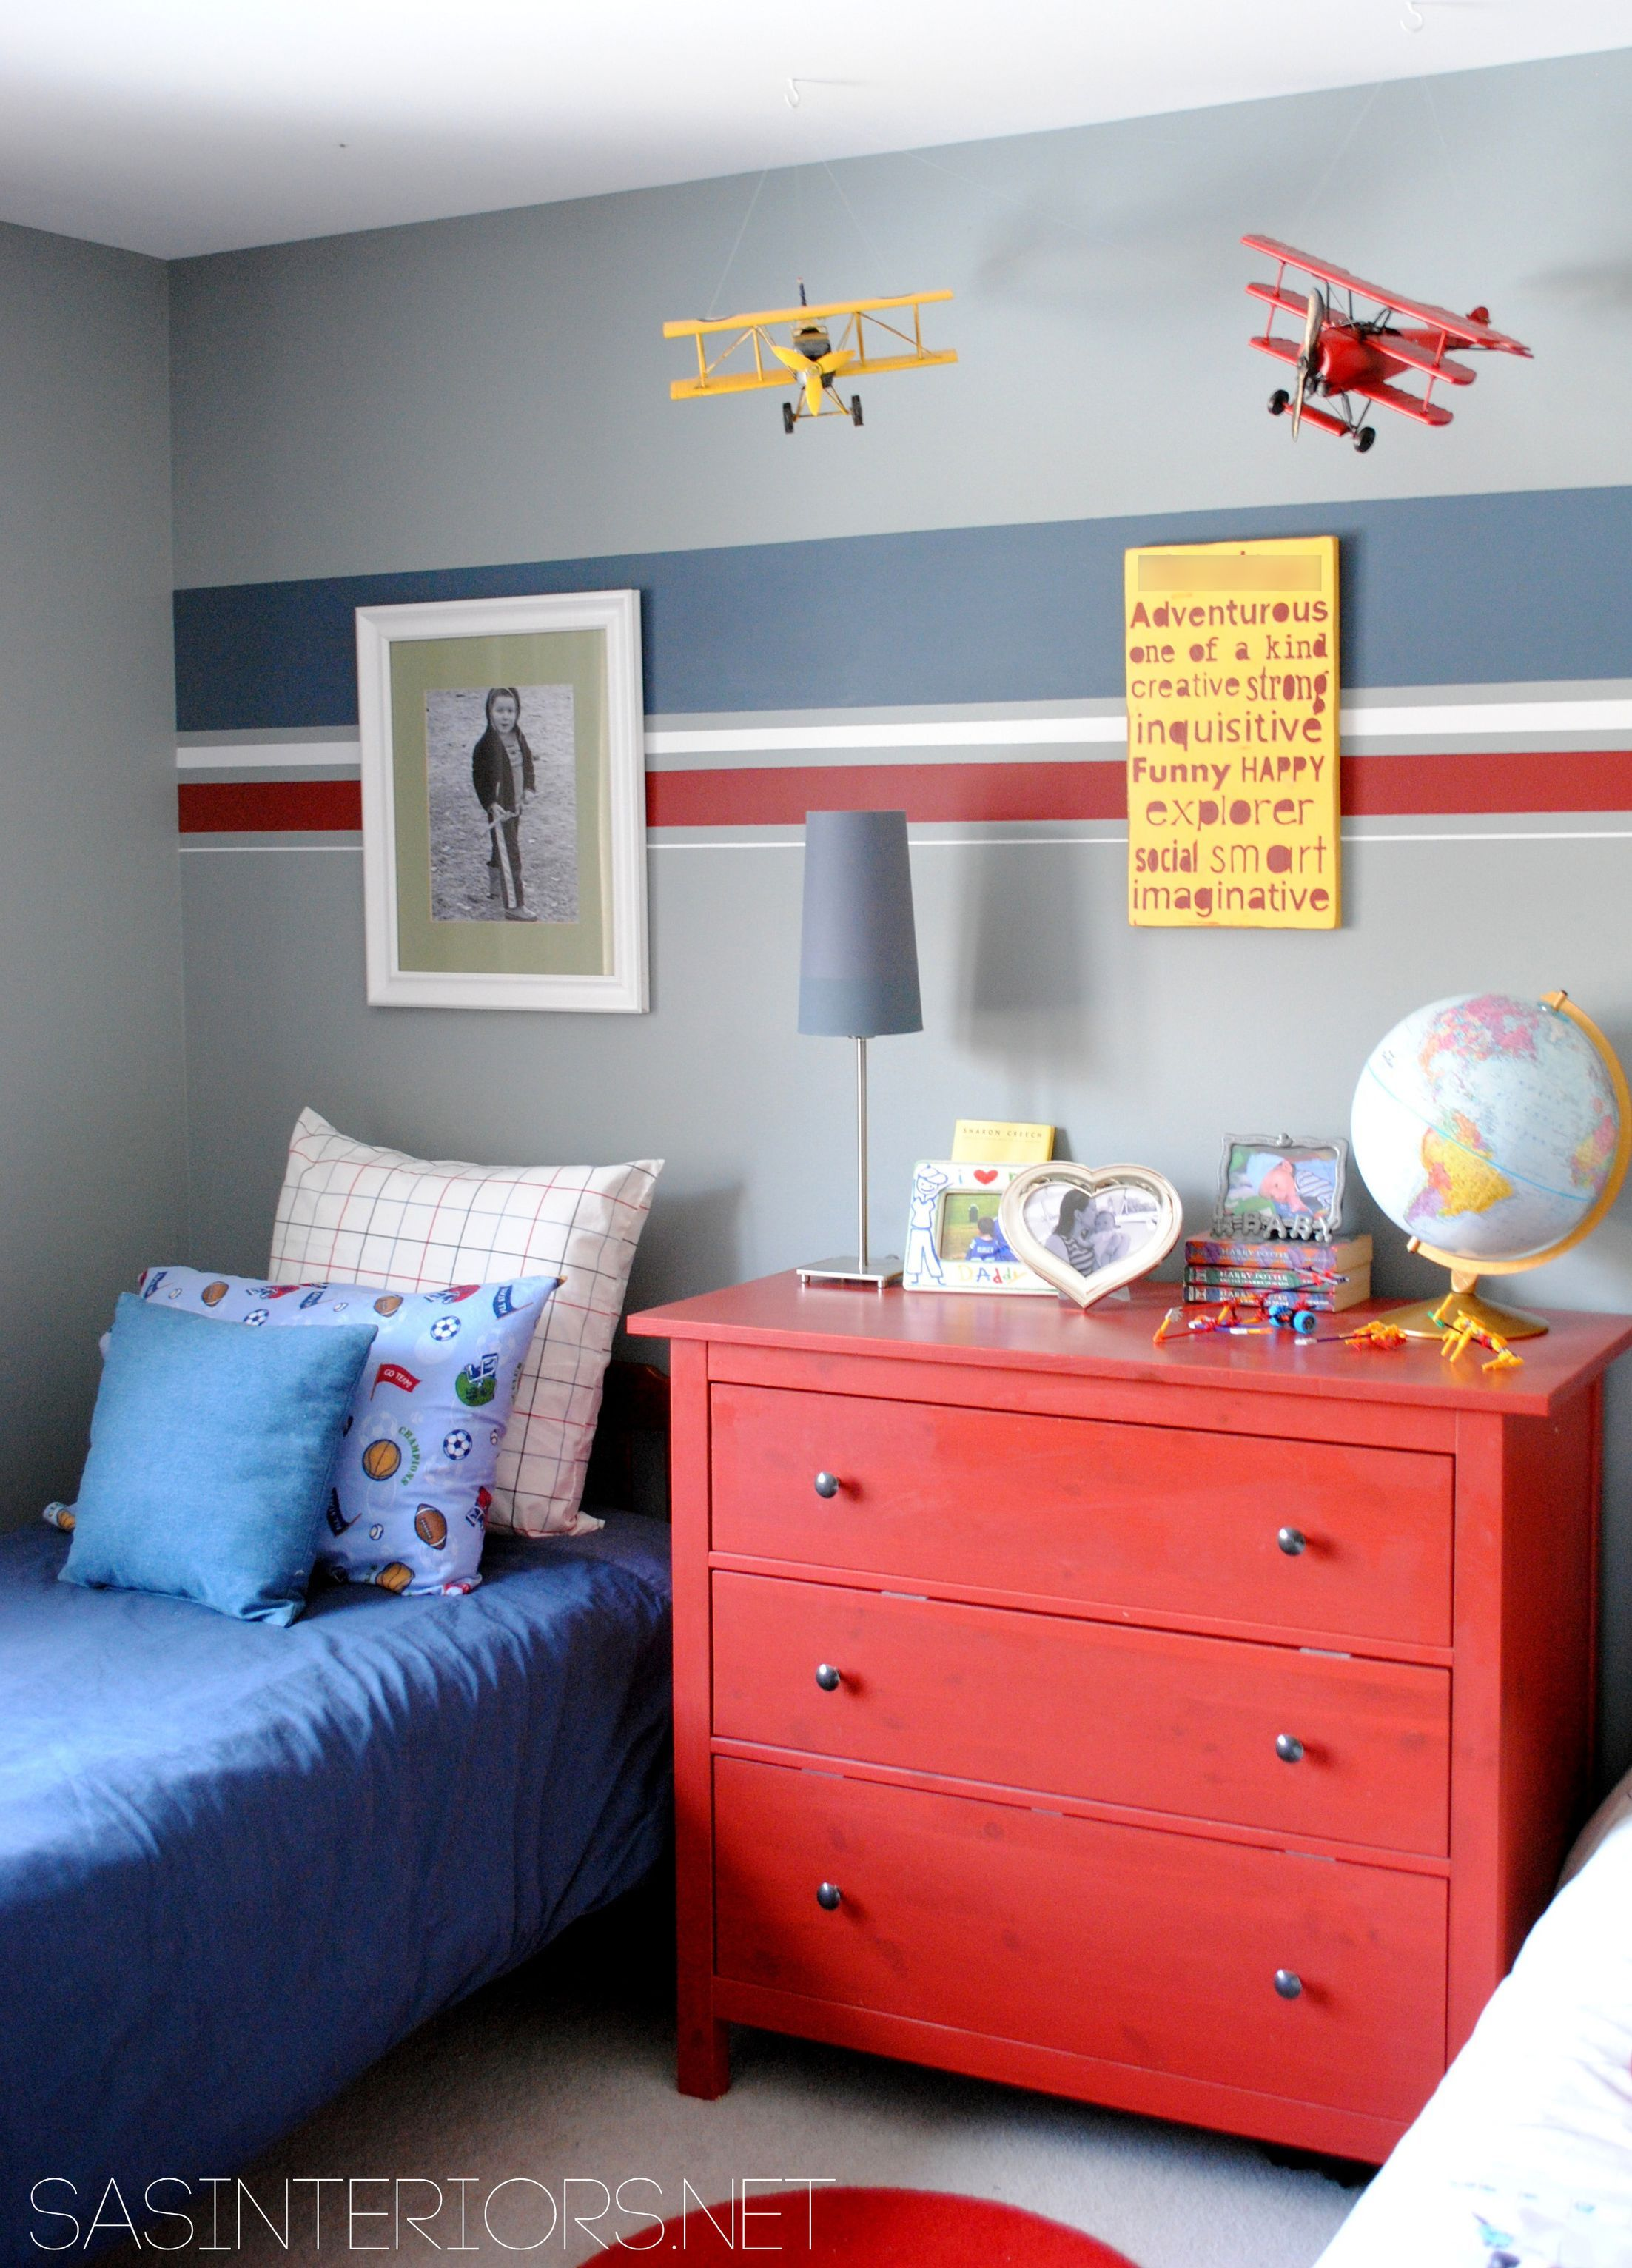 Bedroom colors blue and red - How To Make Three Paint Colors Work In A Room